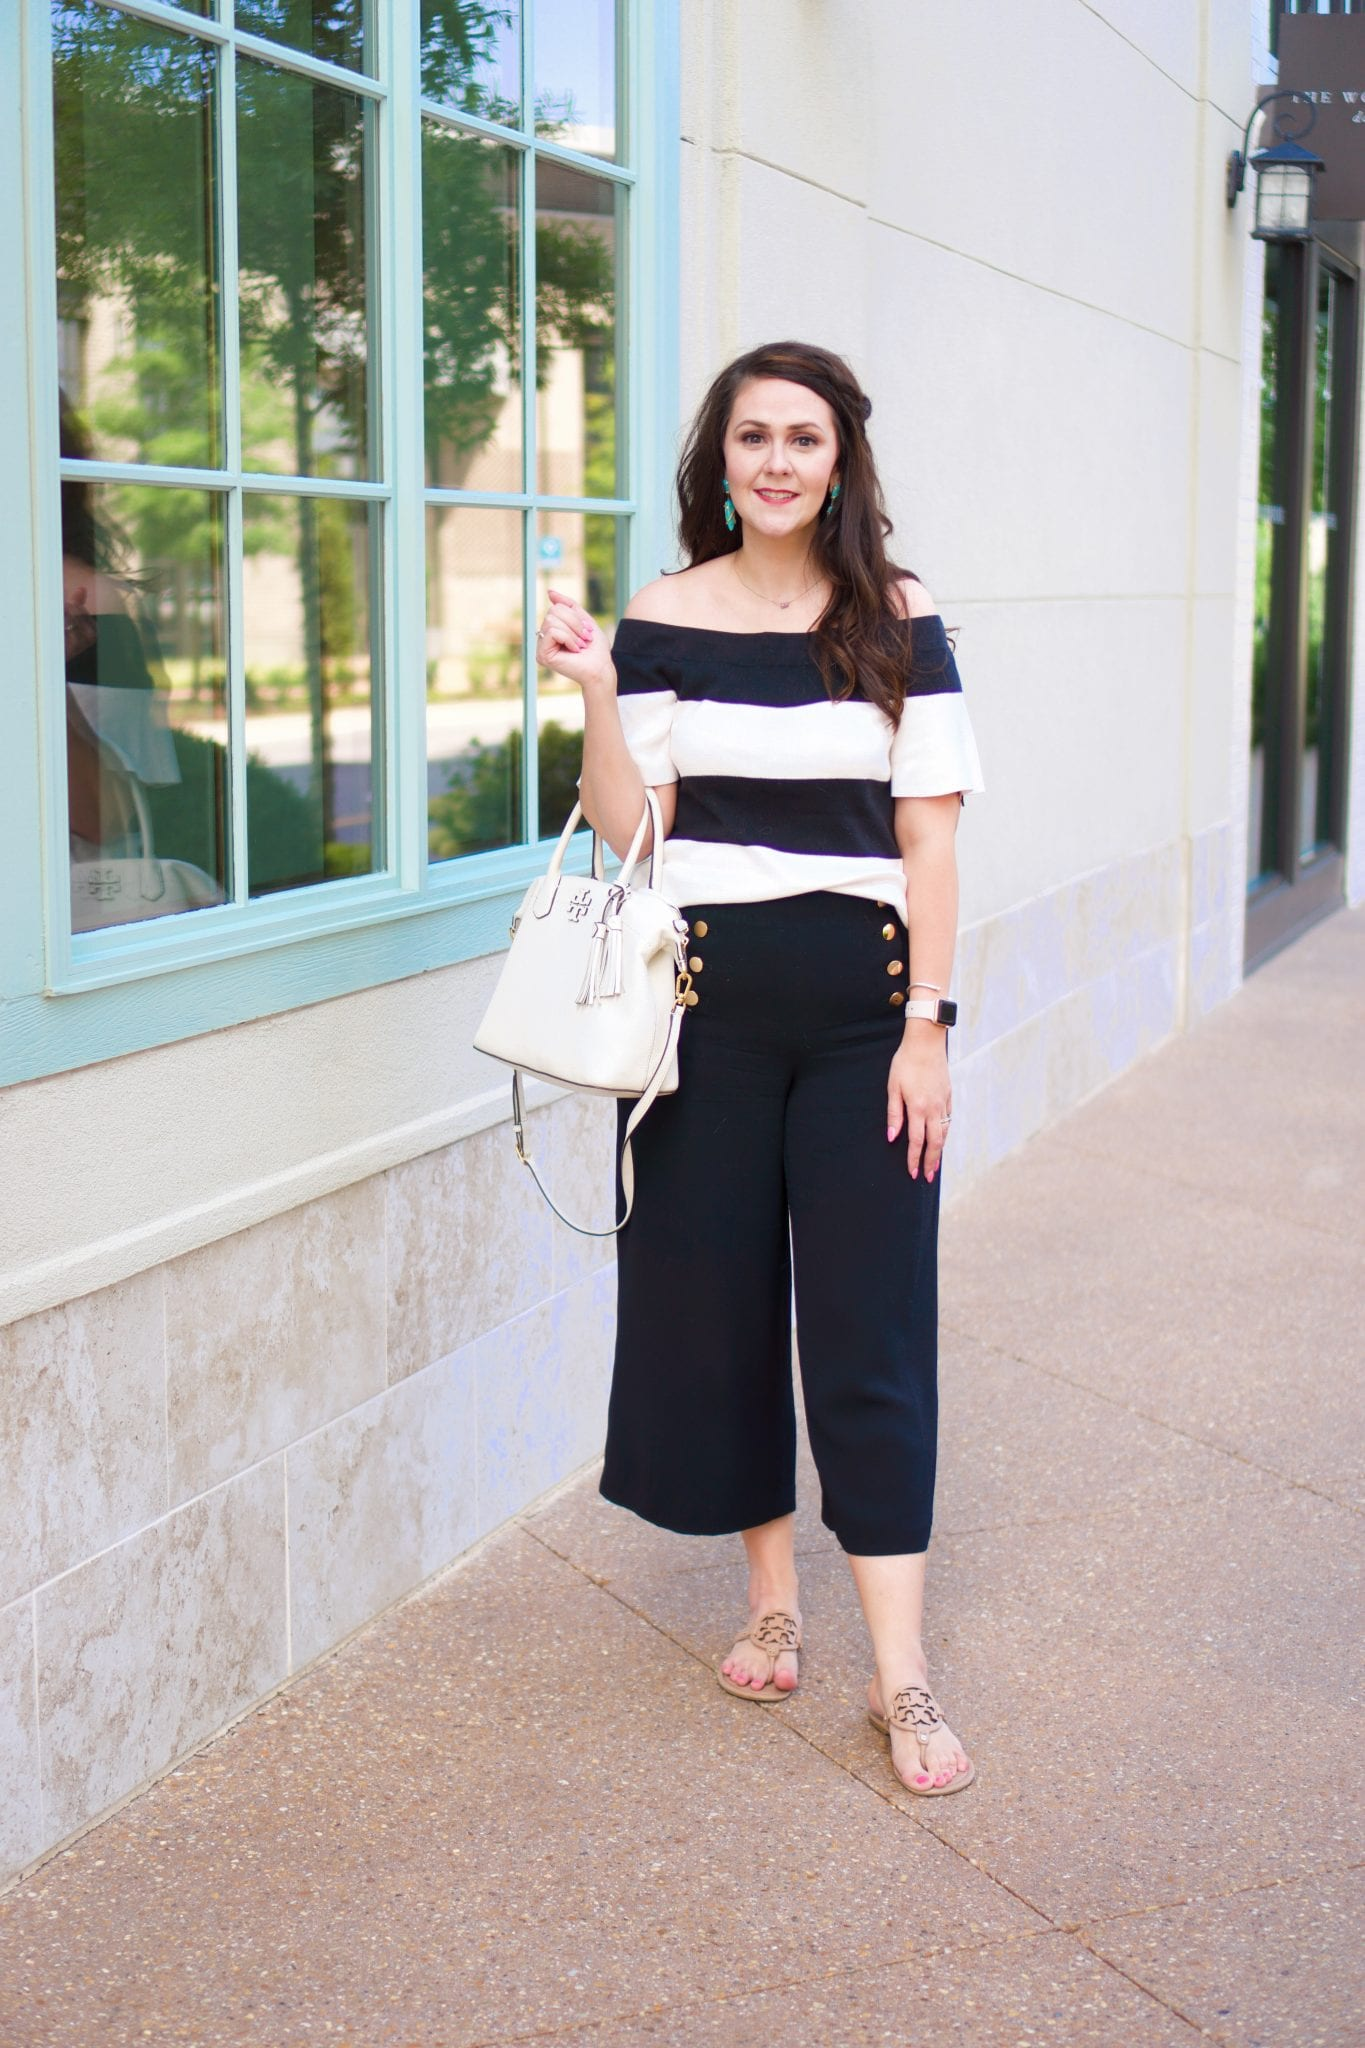 Trend alert: wide leg cropped pants for summer/fall